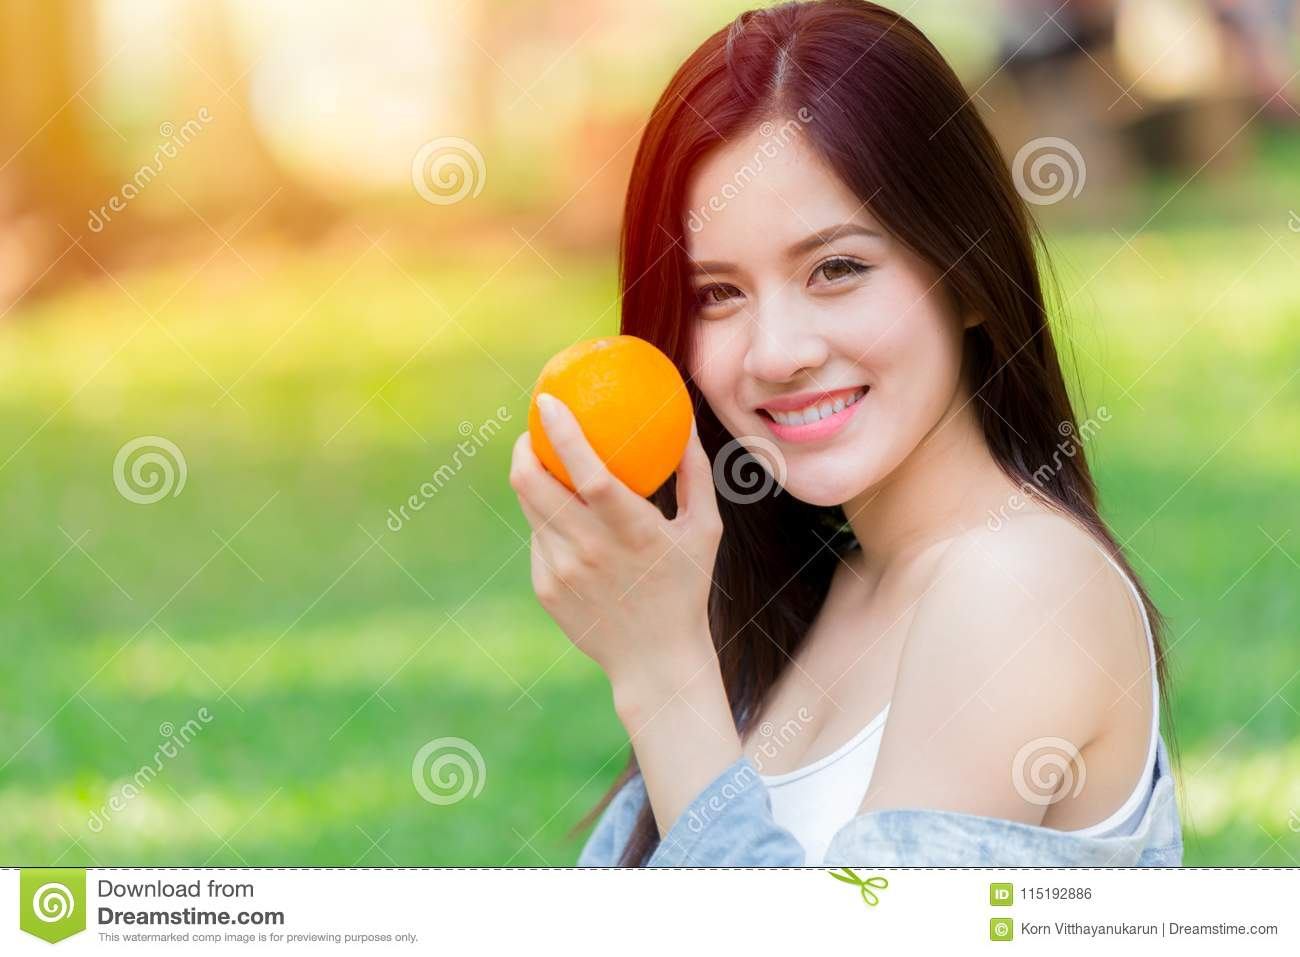 Orange Fruit with Healthy Asian woman high vitamin C